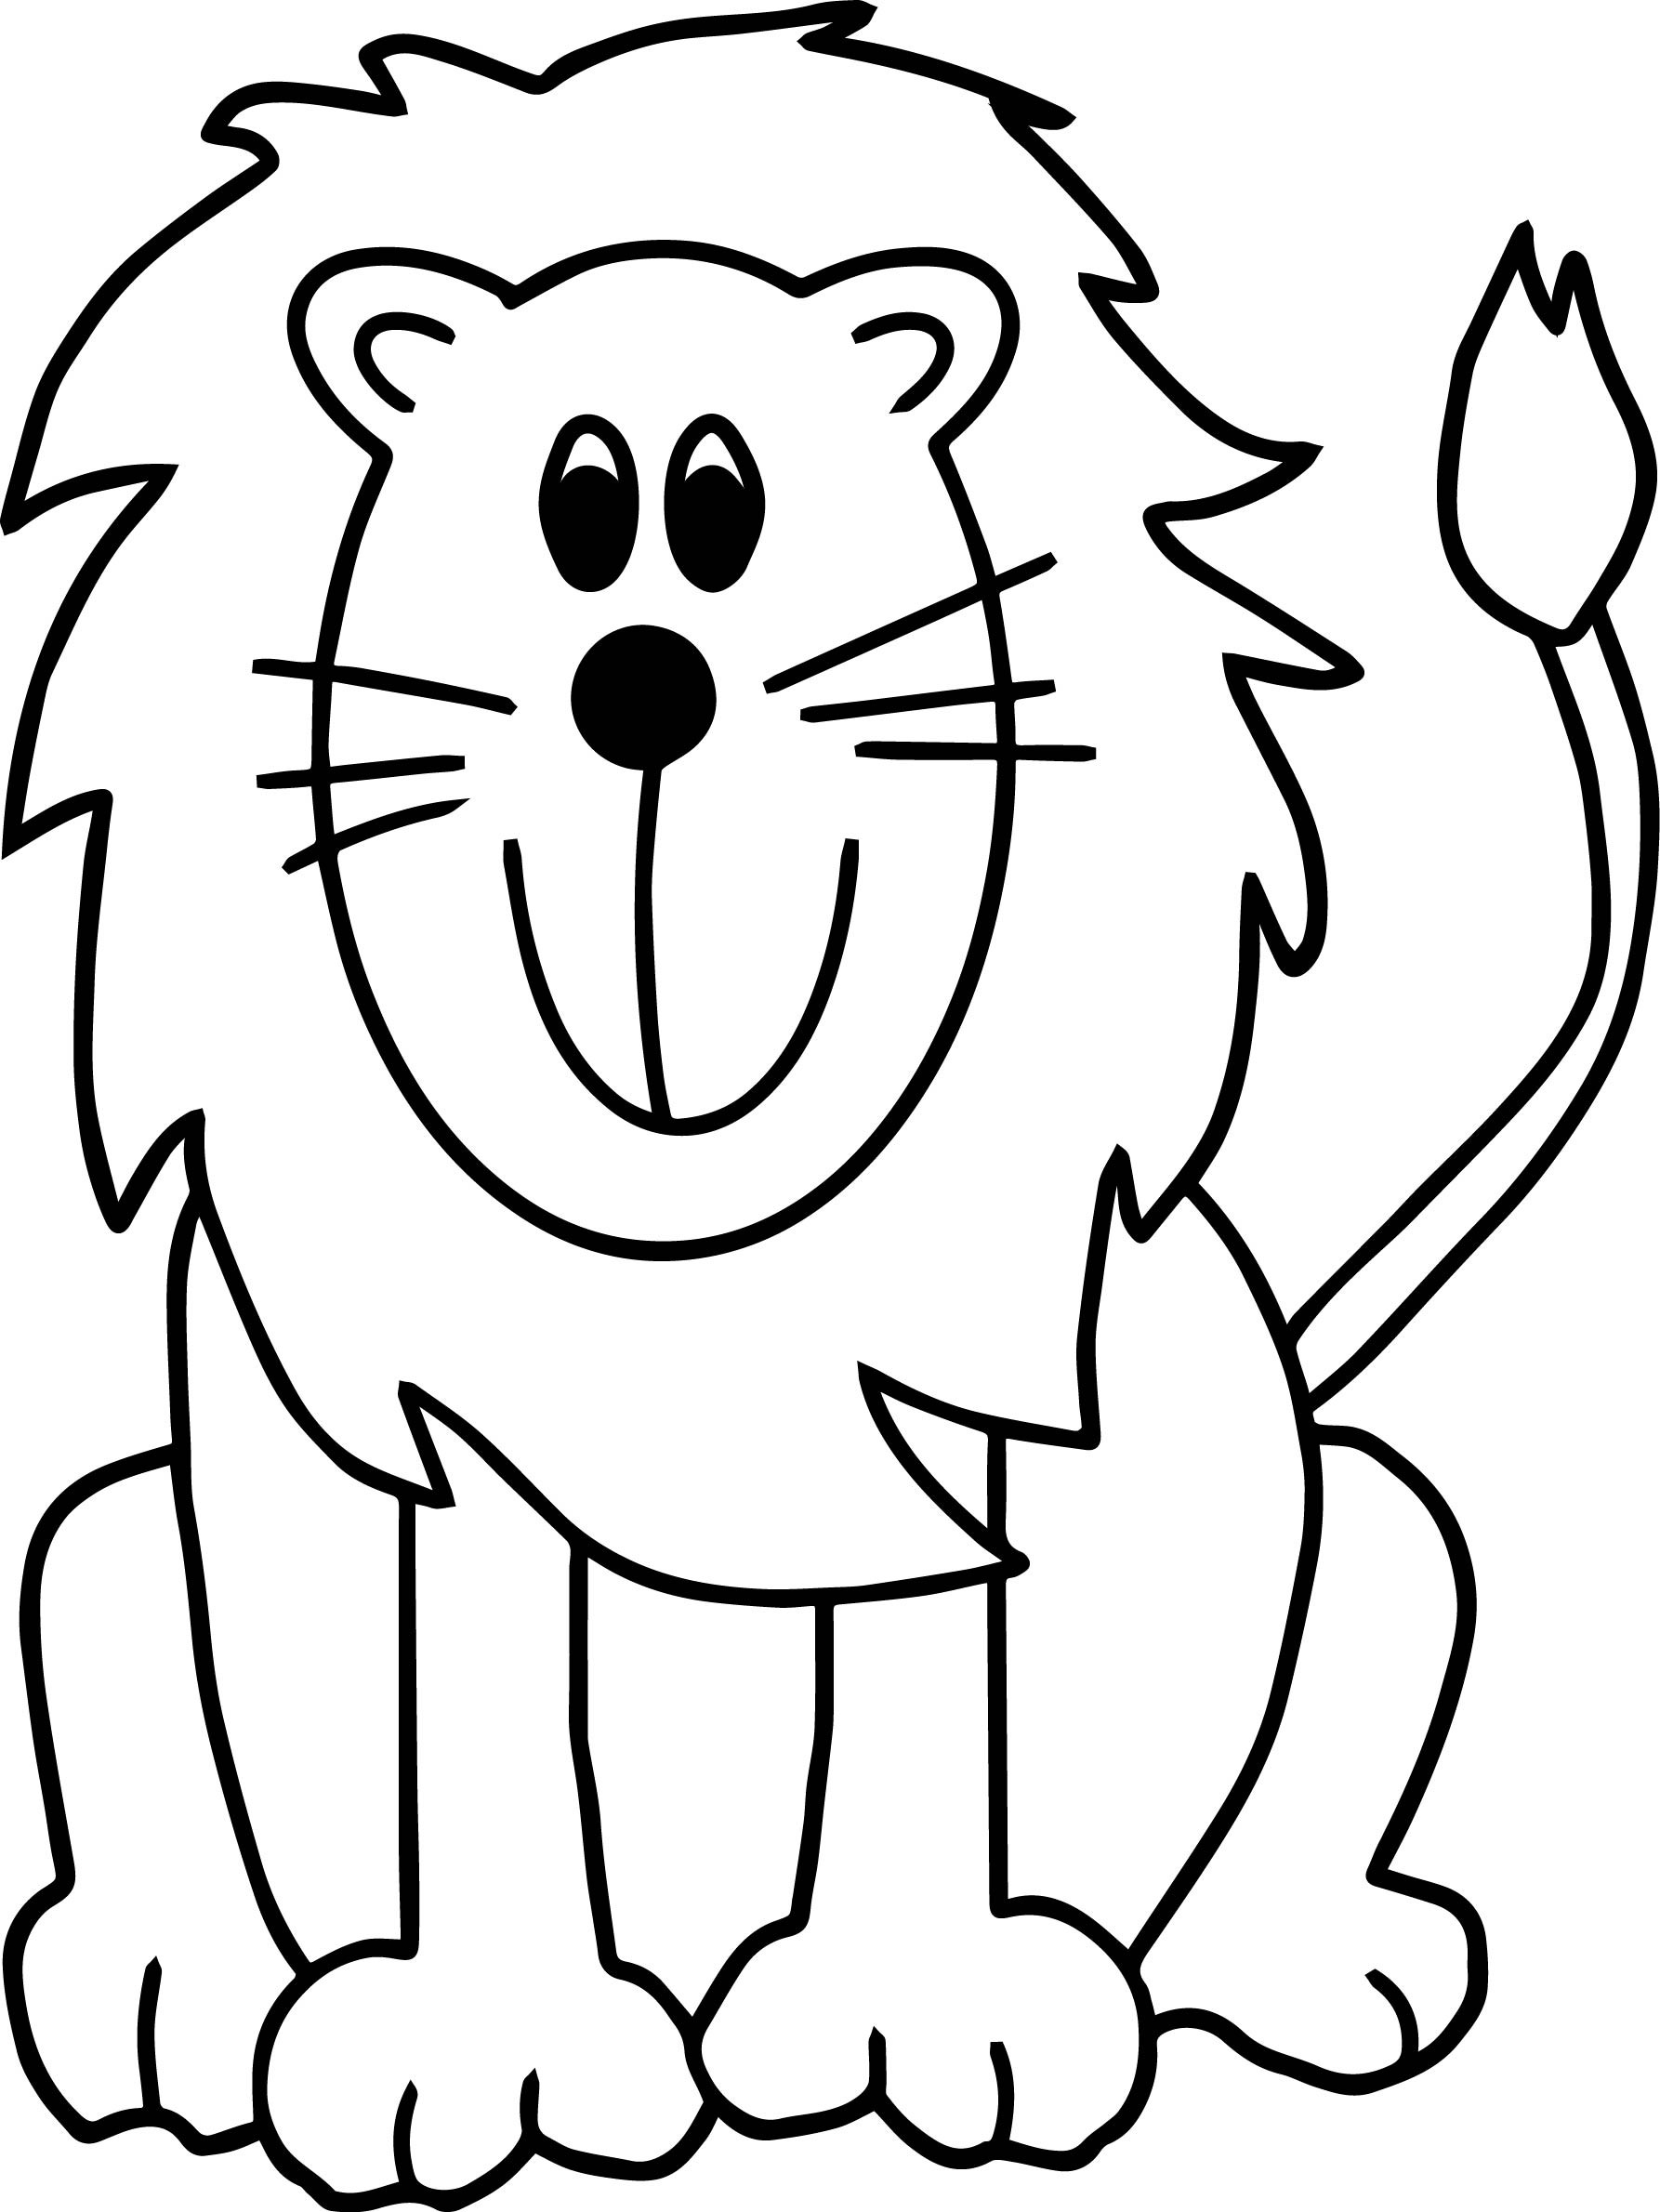 zoo coloring pictures for preschool zoo colouring pages sketch coloring page zoo preschool coloring pictures for